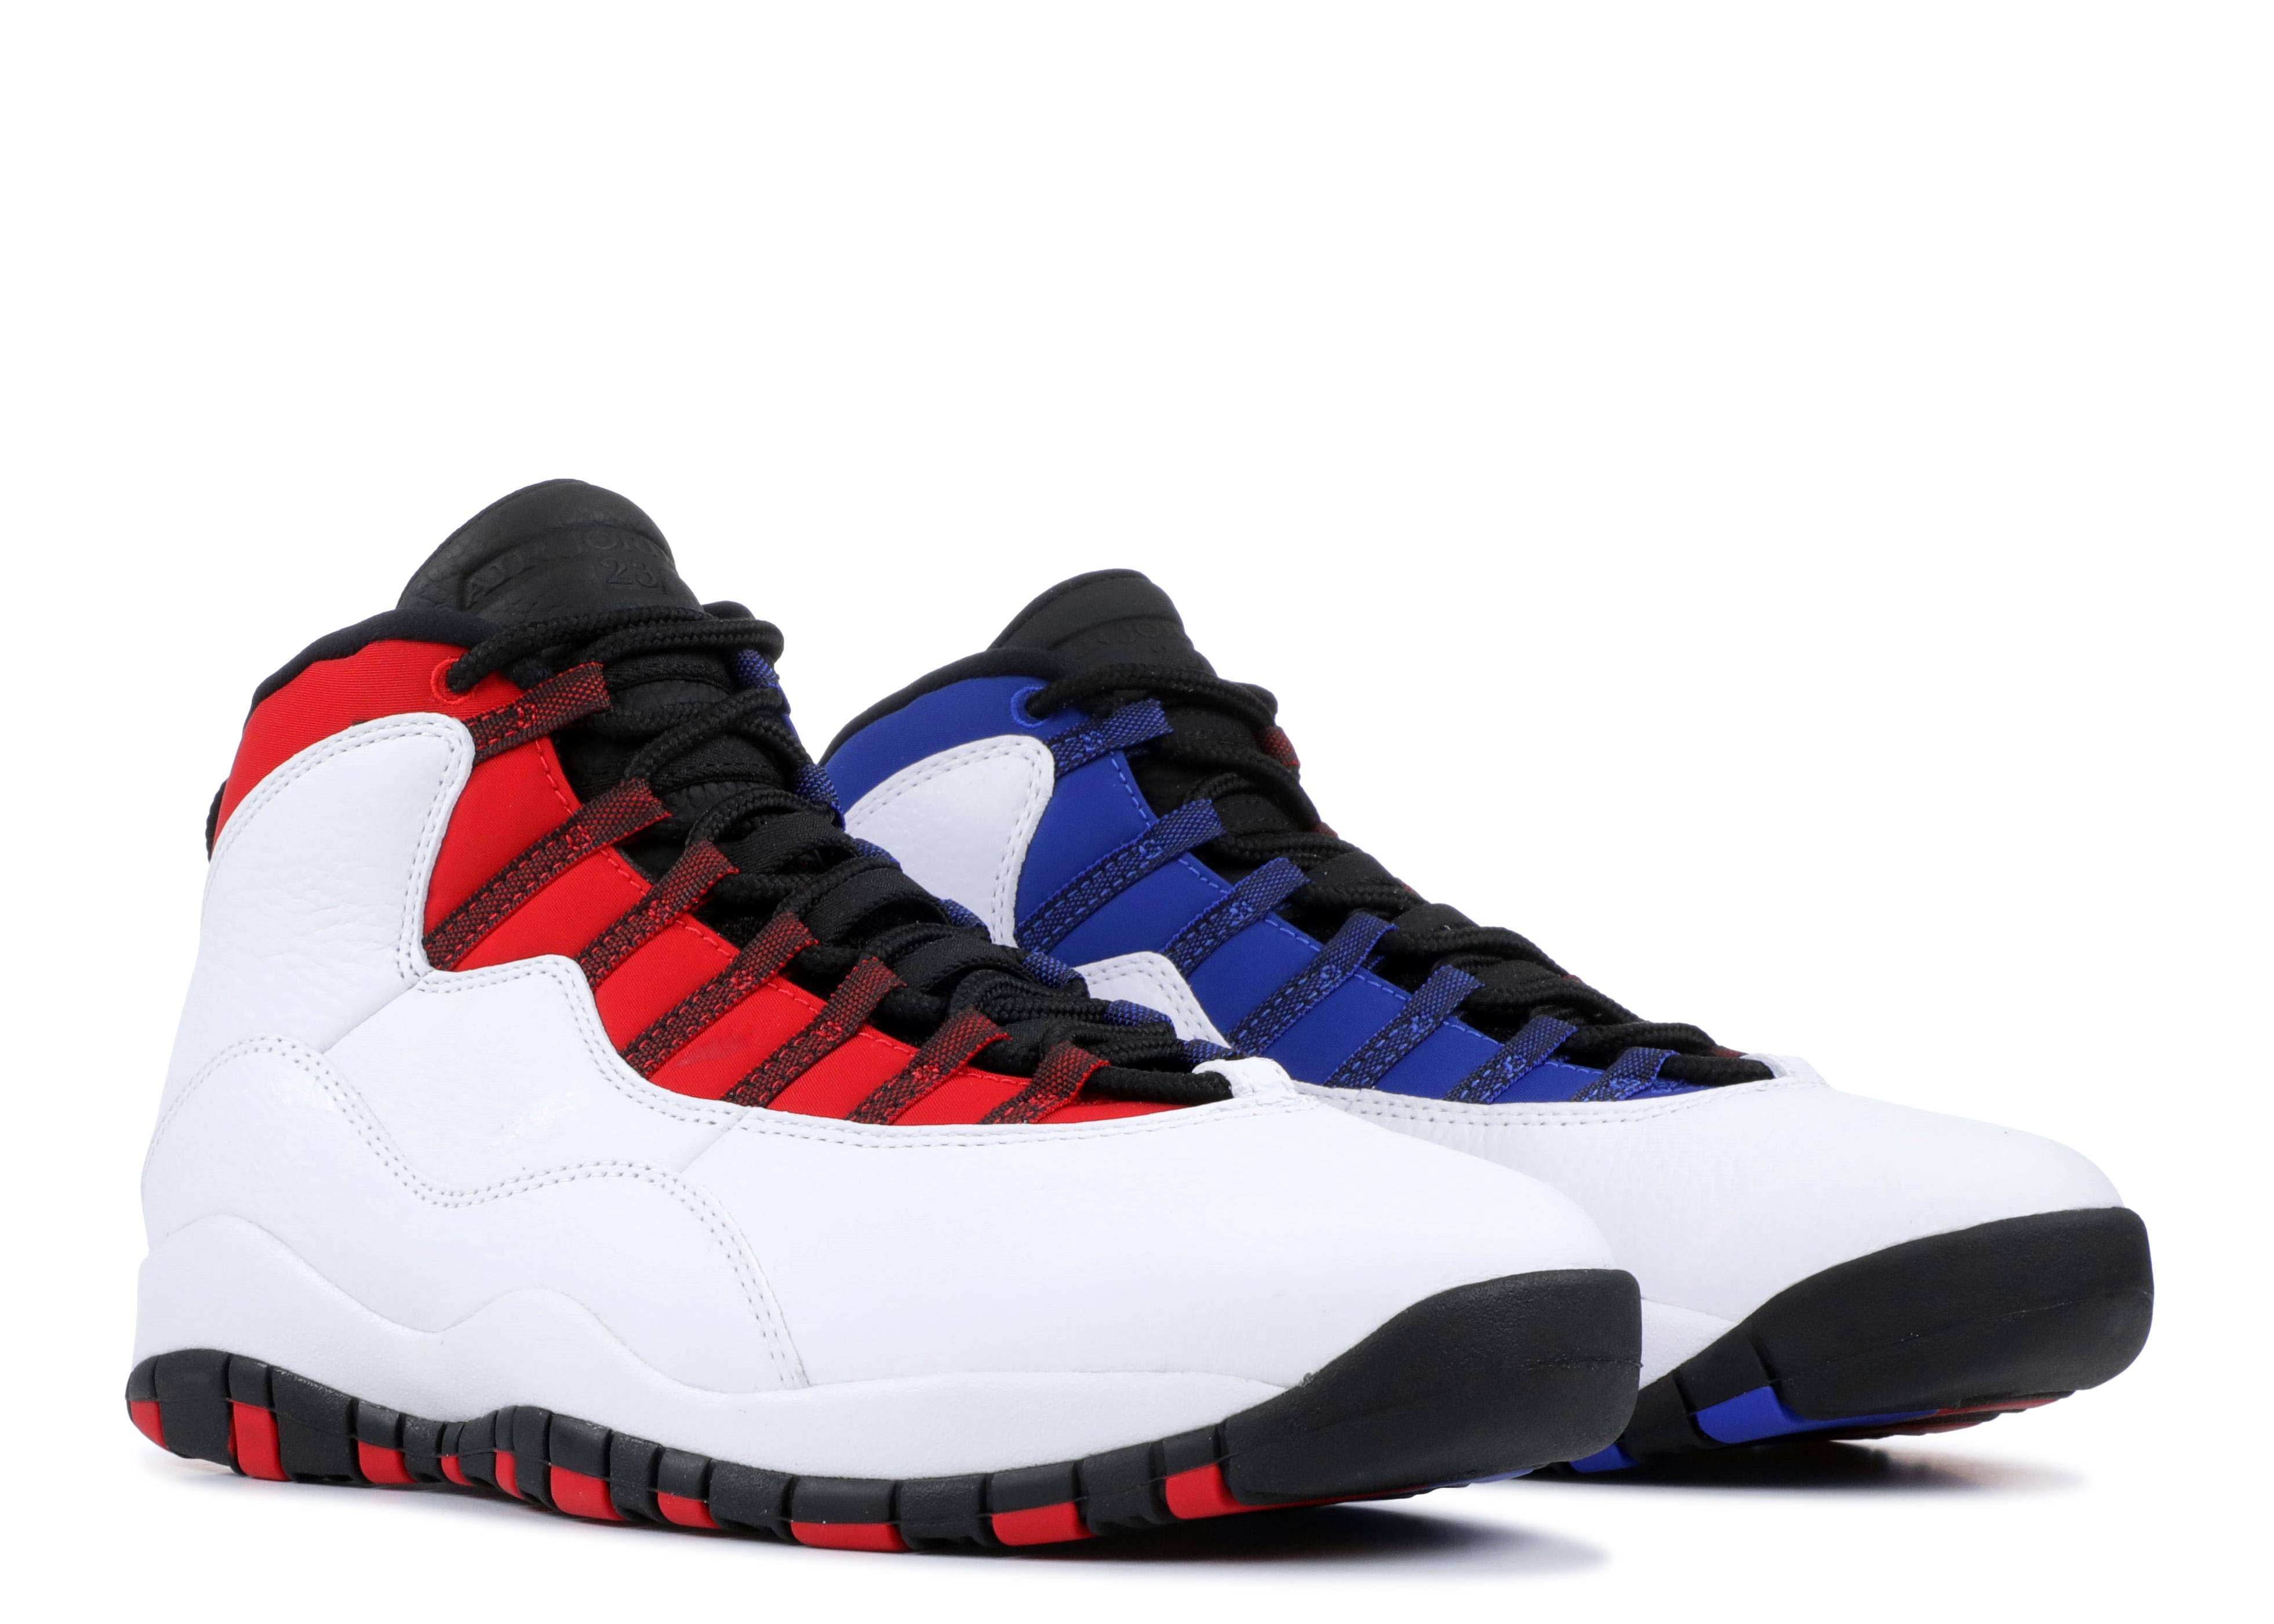 5b2b42c0d2a884 Air Jordan 10 (X) Shoes - Nike